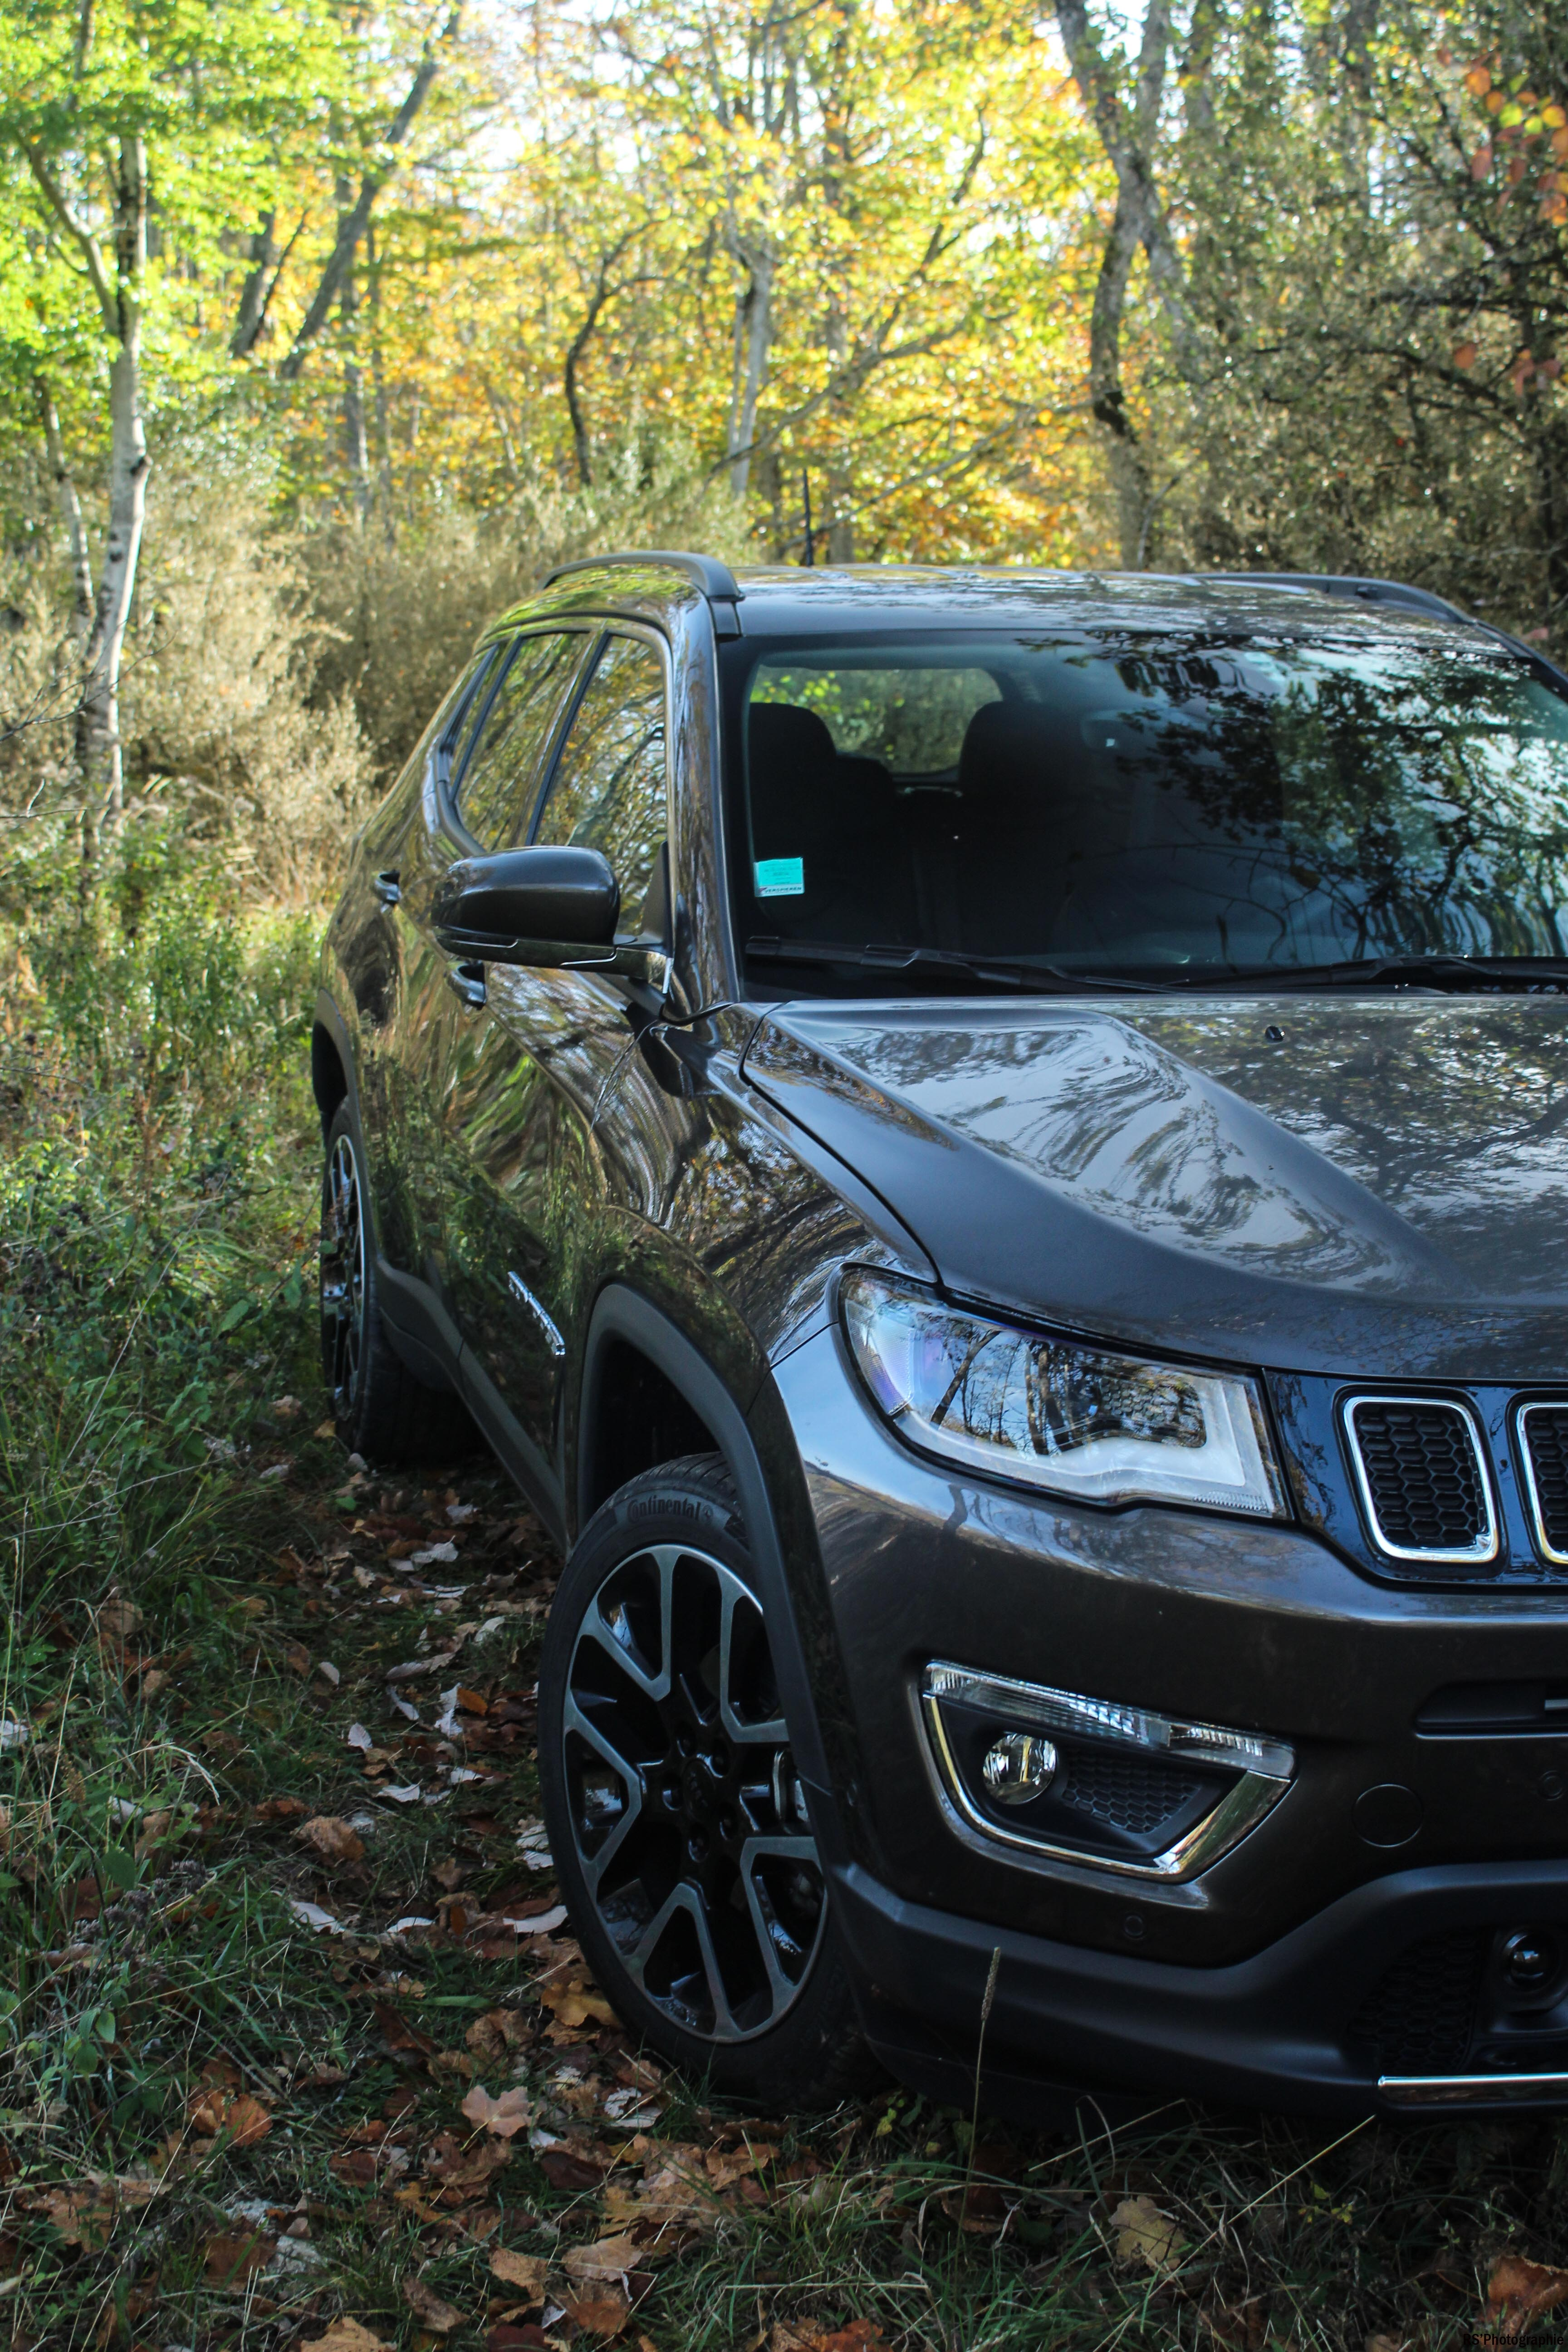 jeepcompass38-jeep-compass-avant-front-Arnaud Demasier-RSPhotographie